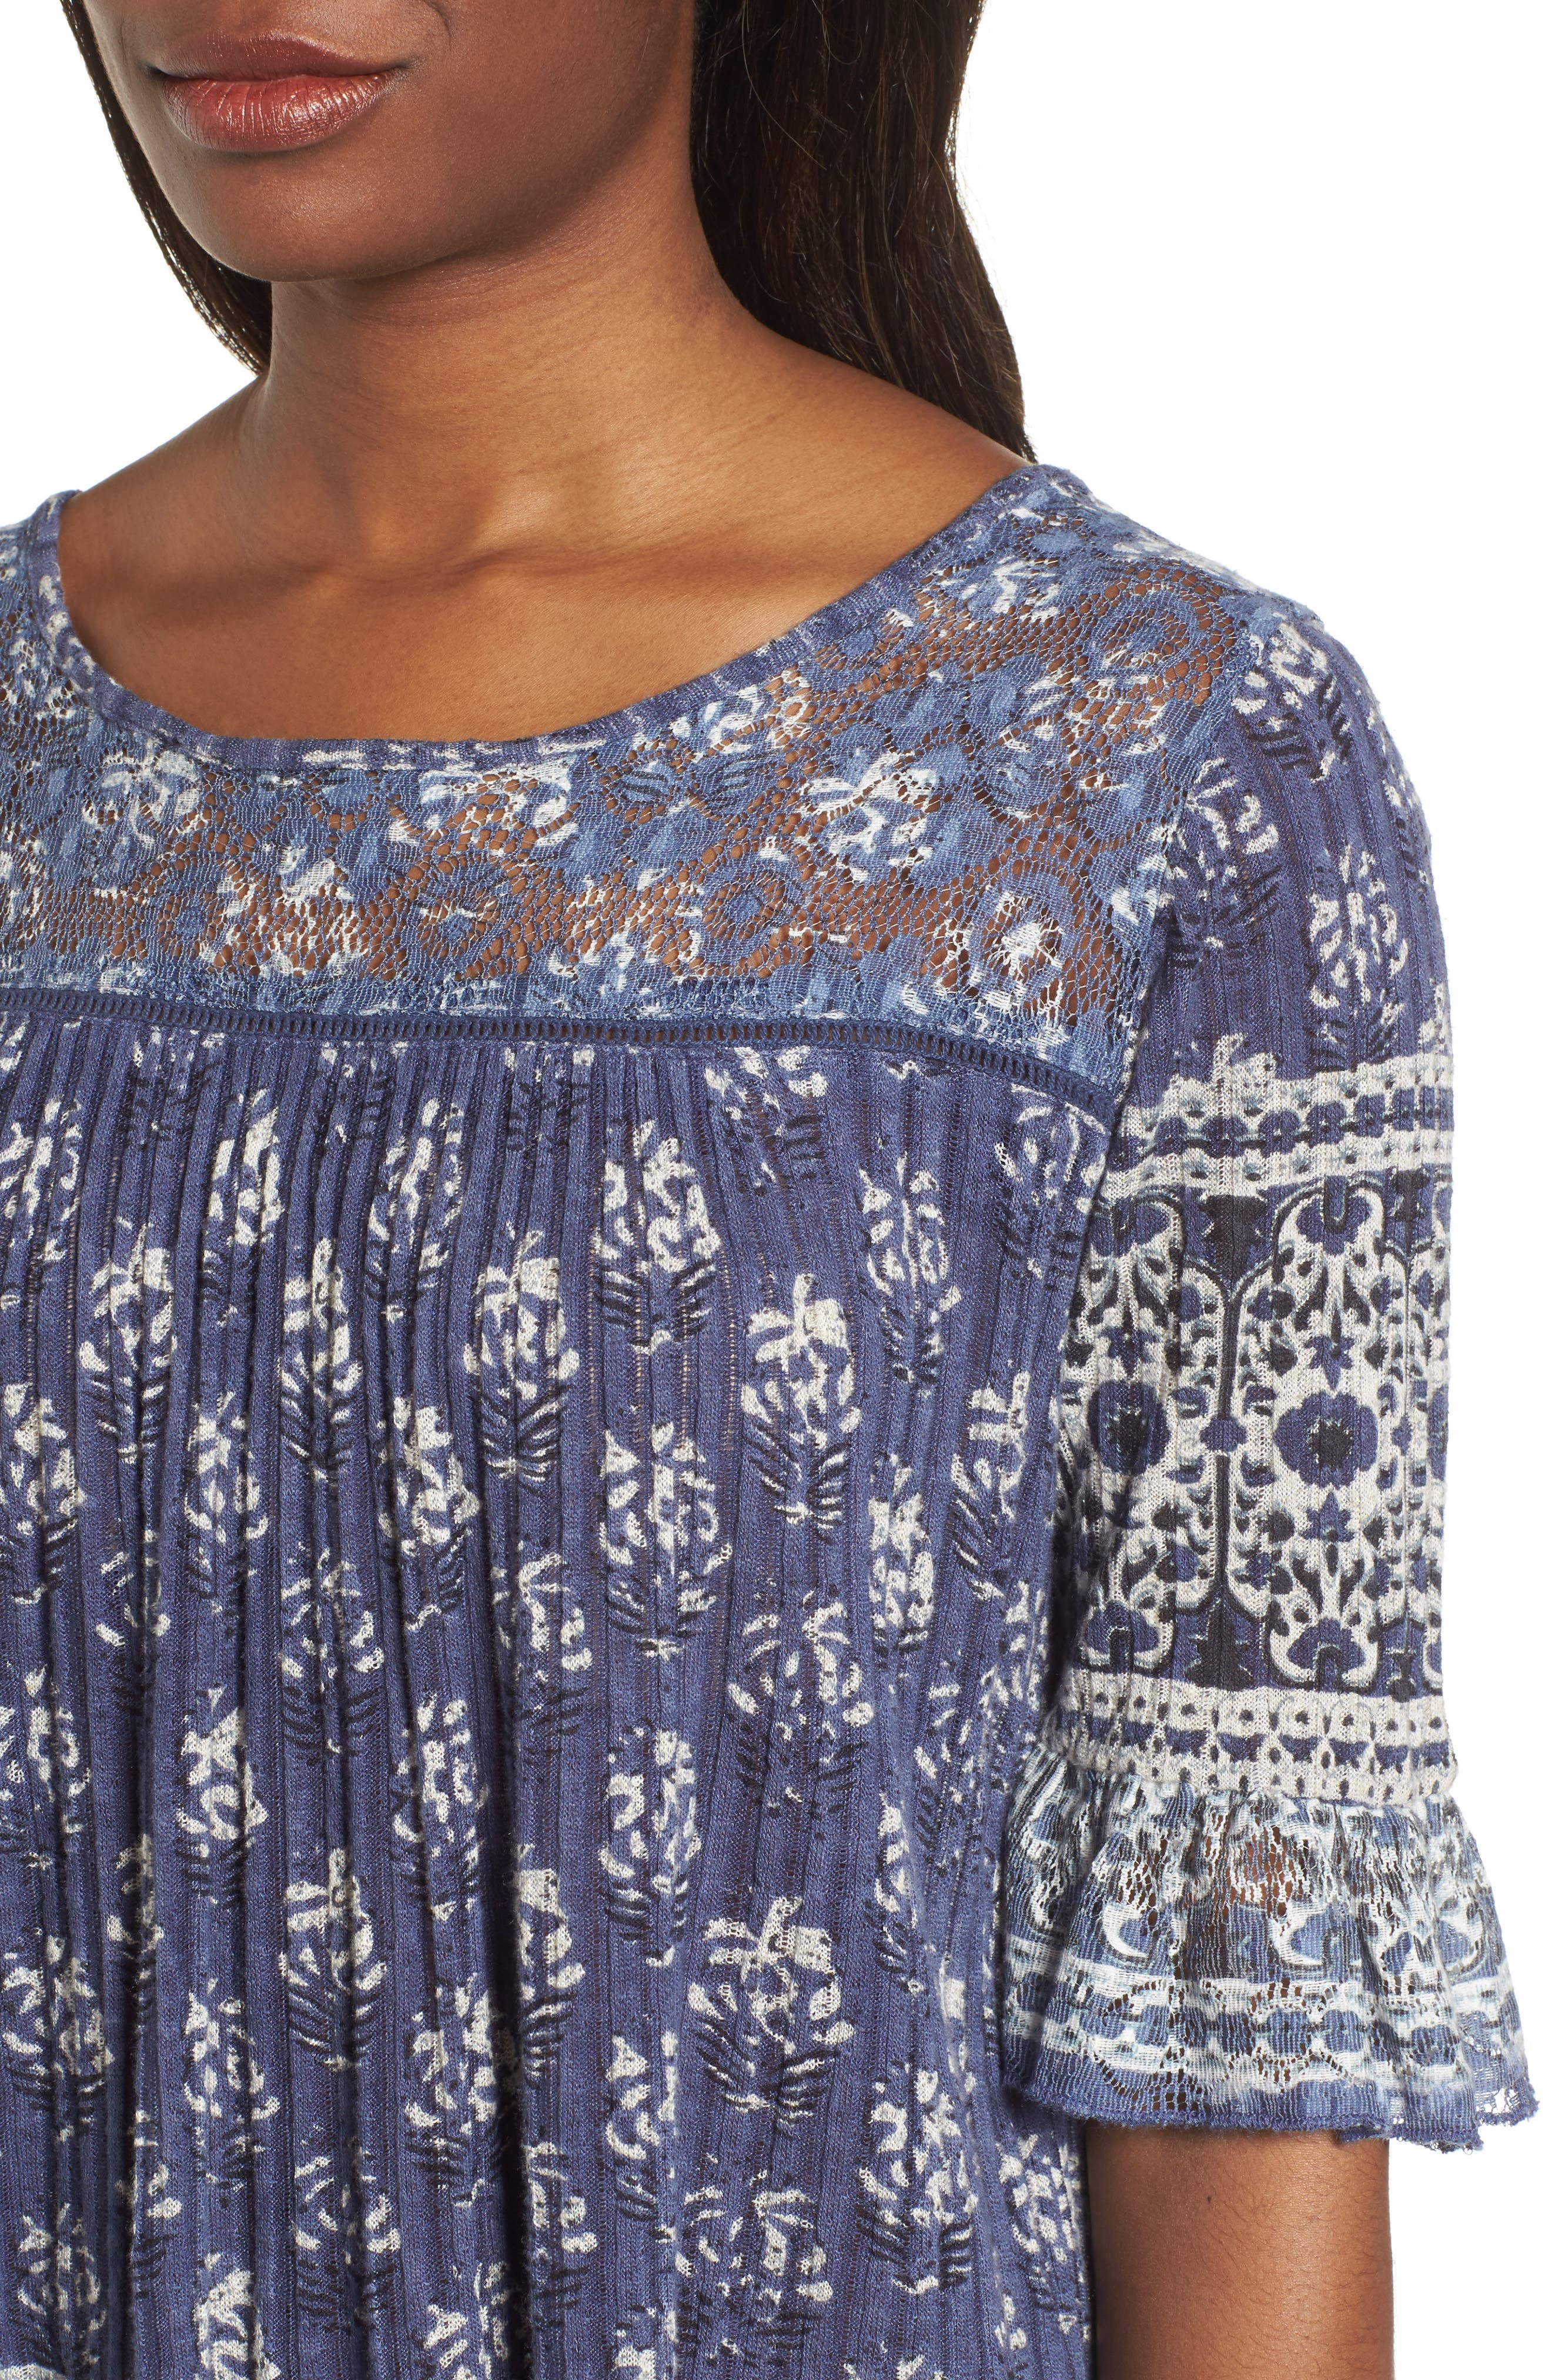 Blue and White Bell Sleeve Top,                             Alternate thumbnail 4, color,                             460